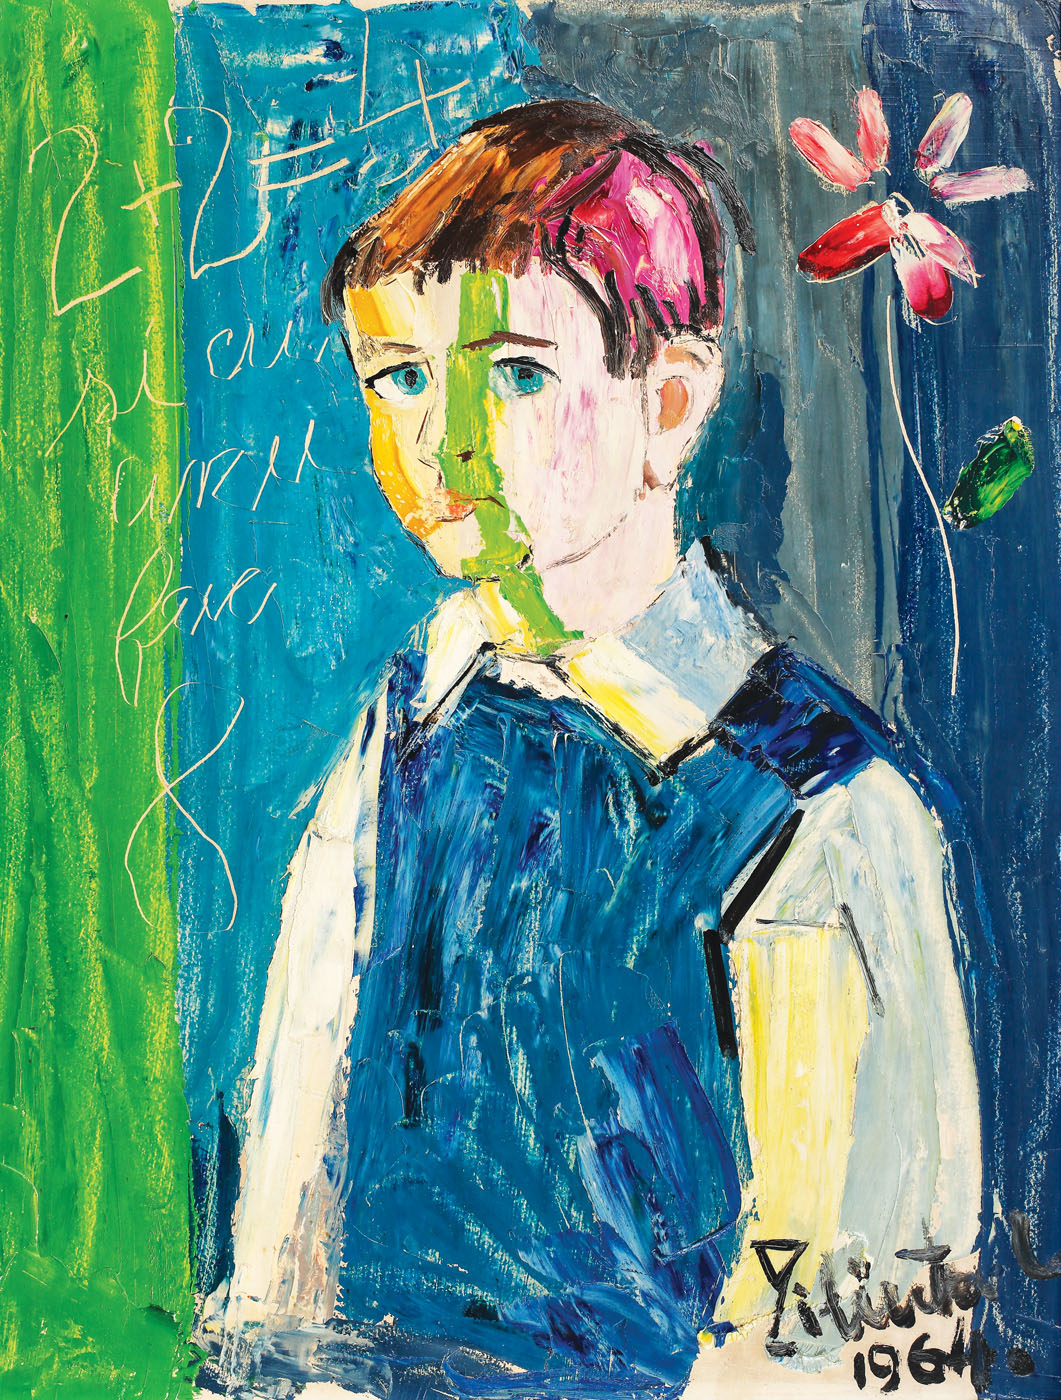 Tangled in calculations [1964], private collection